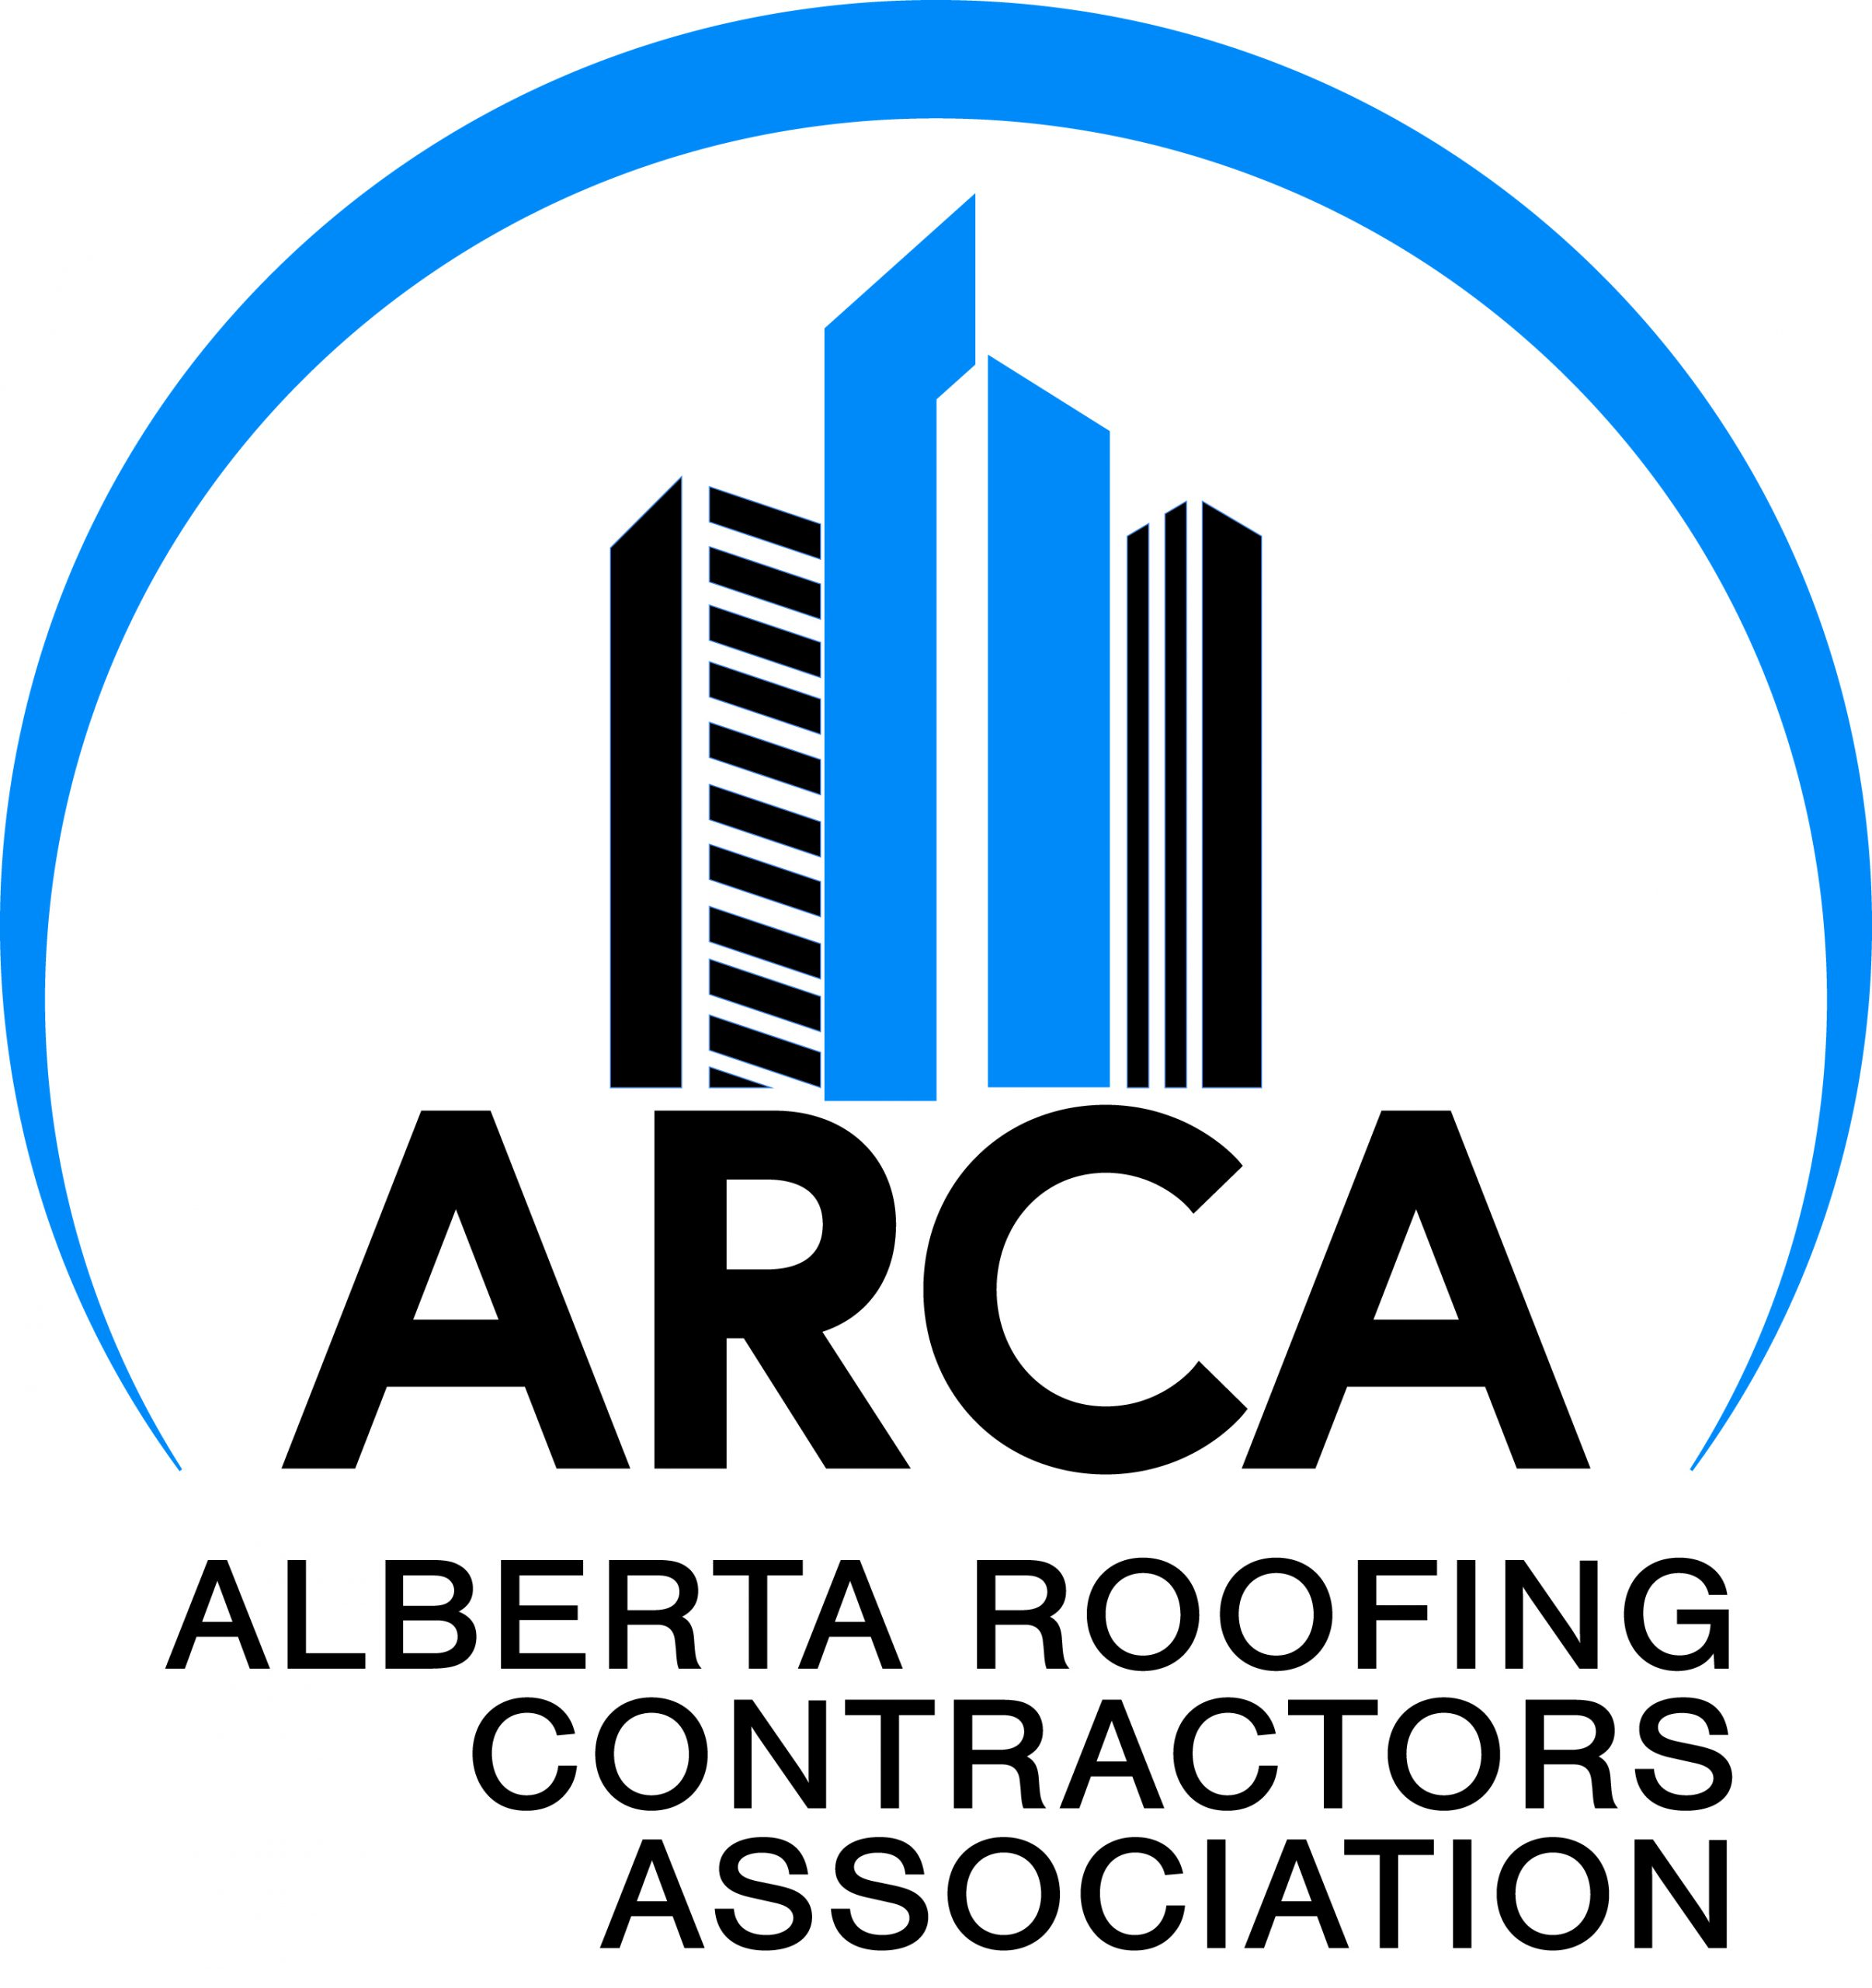 ARCA - Members of the Alberta Roofing Contractors Association